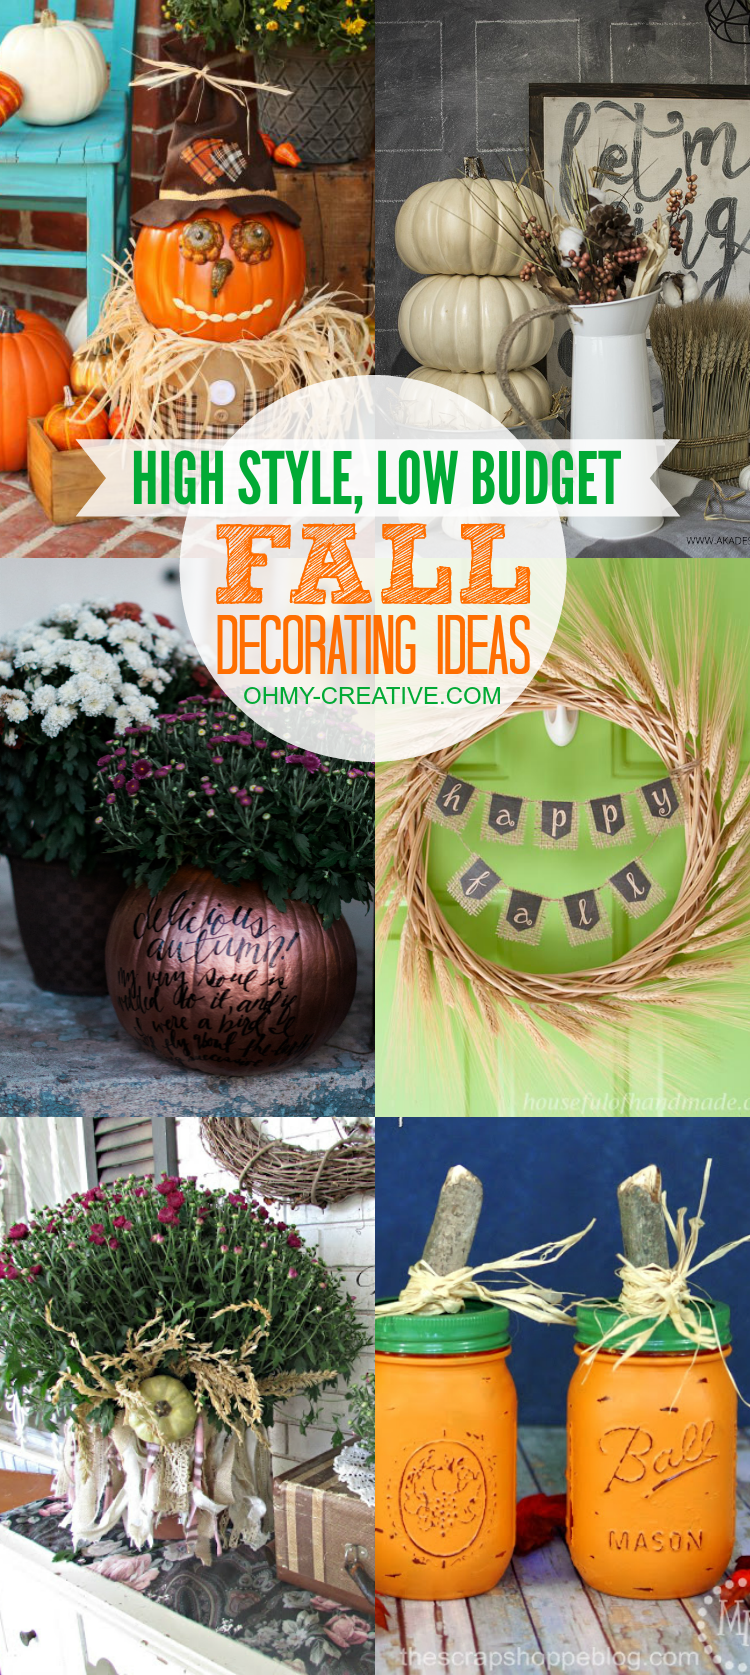 Do It Yourself Home Decorating Ideas: High Style, Low Budget Fall Decorating Ideas